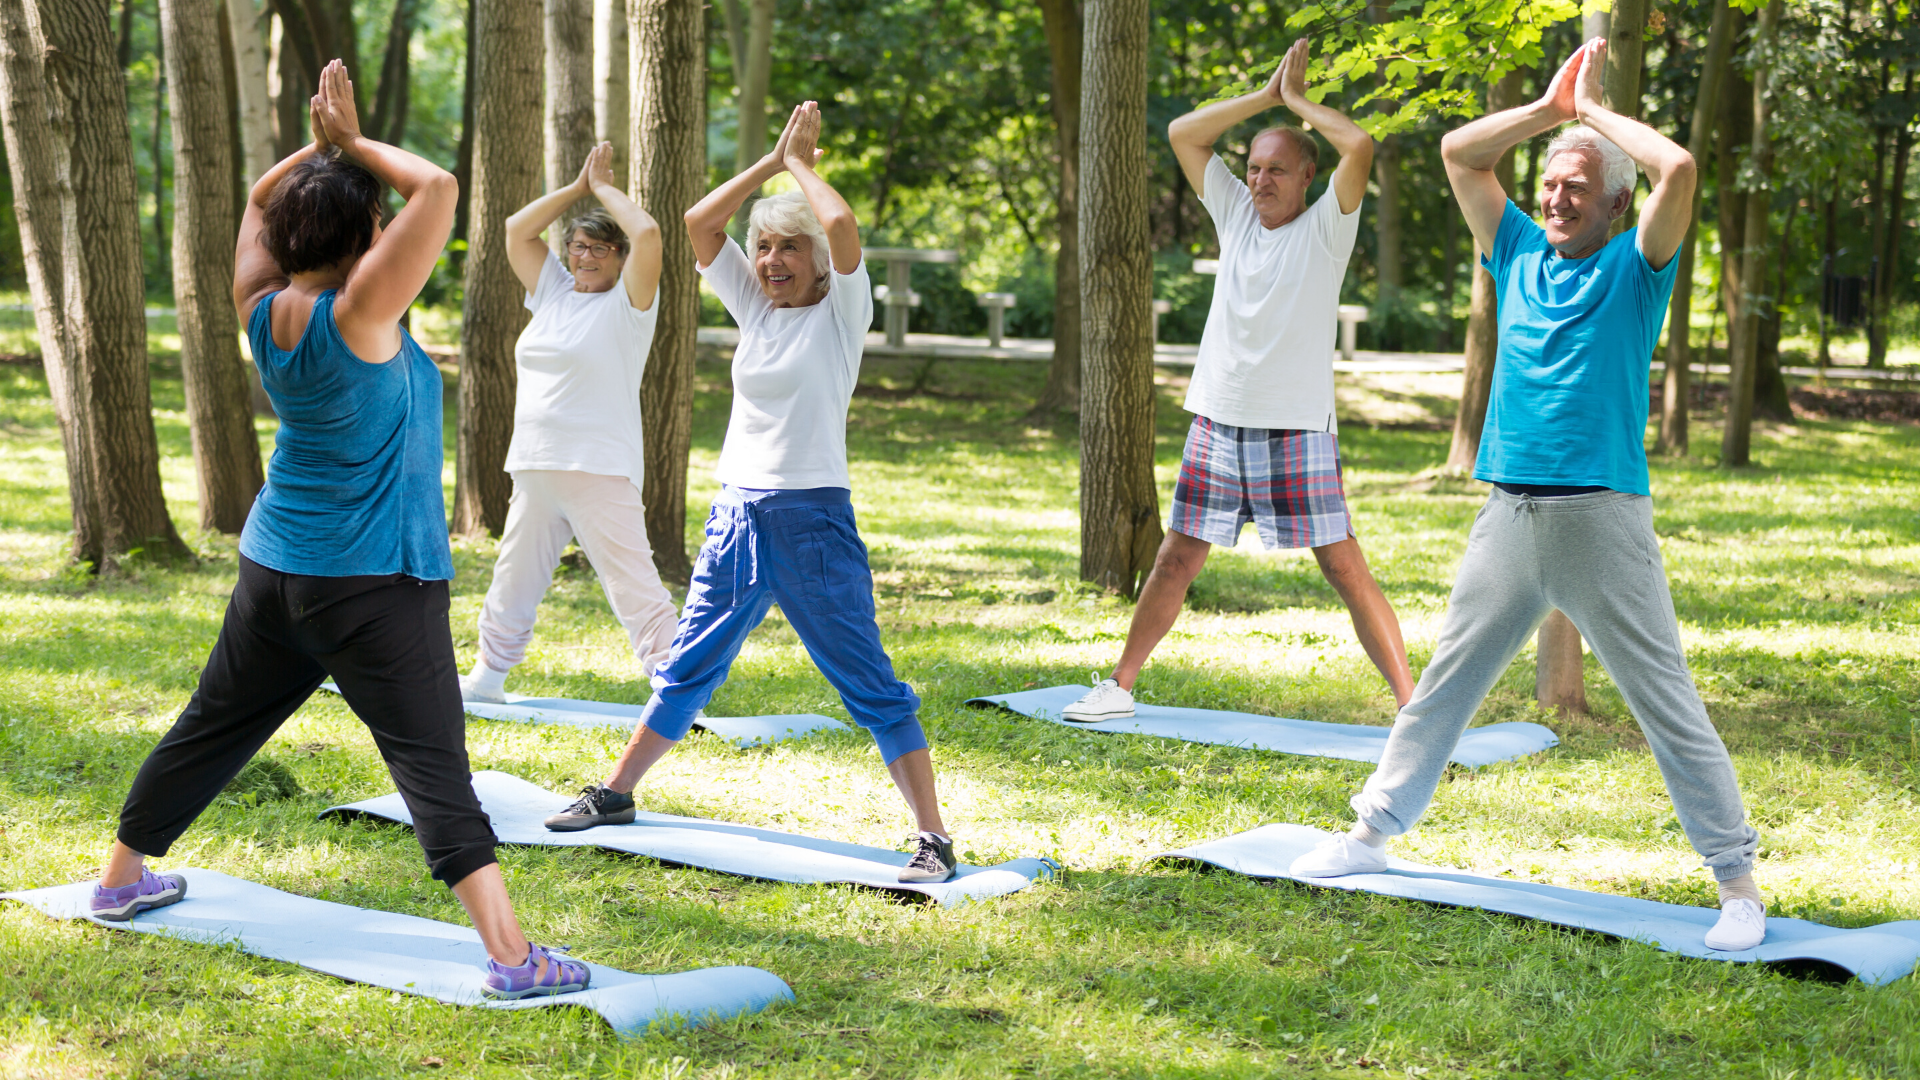 Group of older yoga students practicing yoga outdoors.